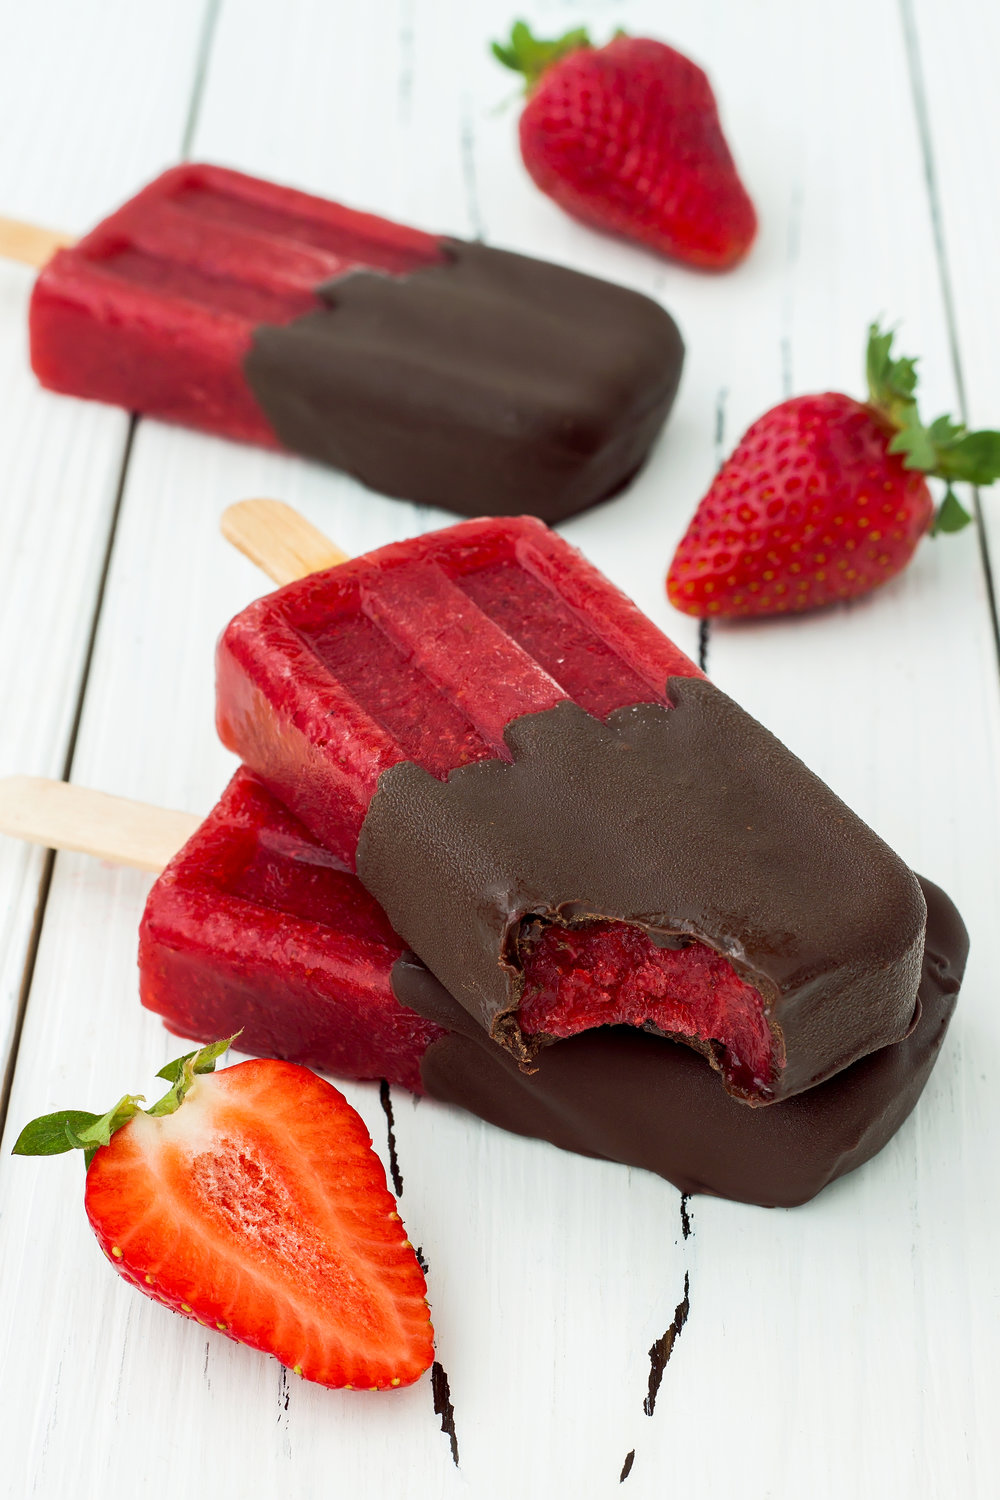 chocolate-dipped-strawberry-red-wine-popsicles-73315273.jpg